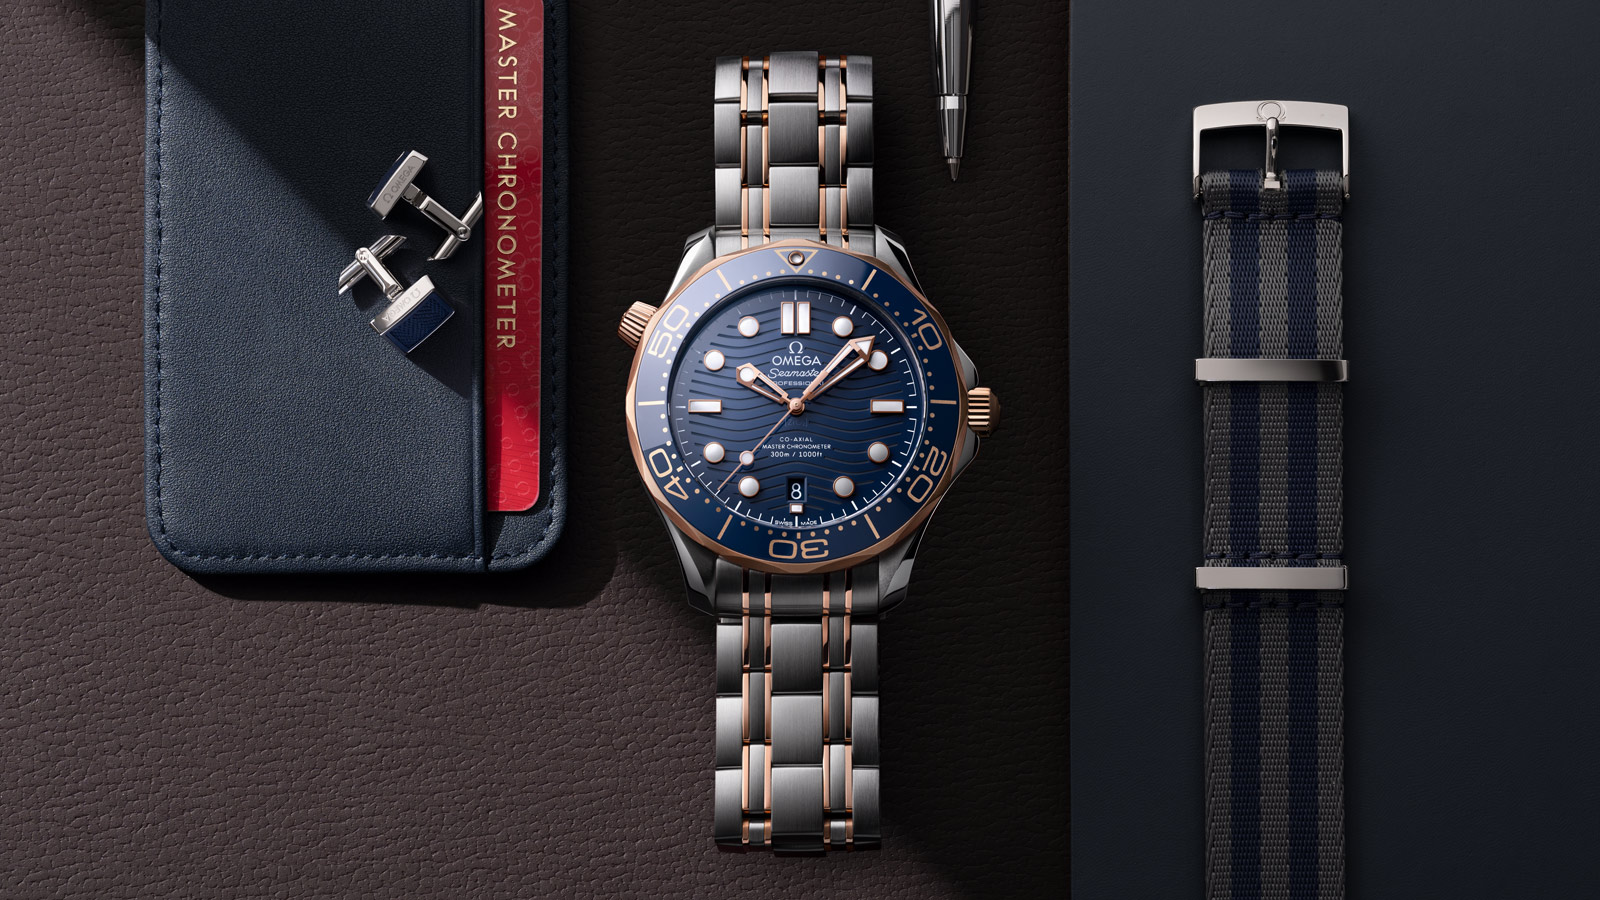 Seamaster Diver 300 M Diver 300M Omega Co‑Axial Master Chronometer 42 mm Watch - 210.20.42.20.03.002